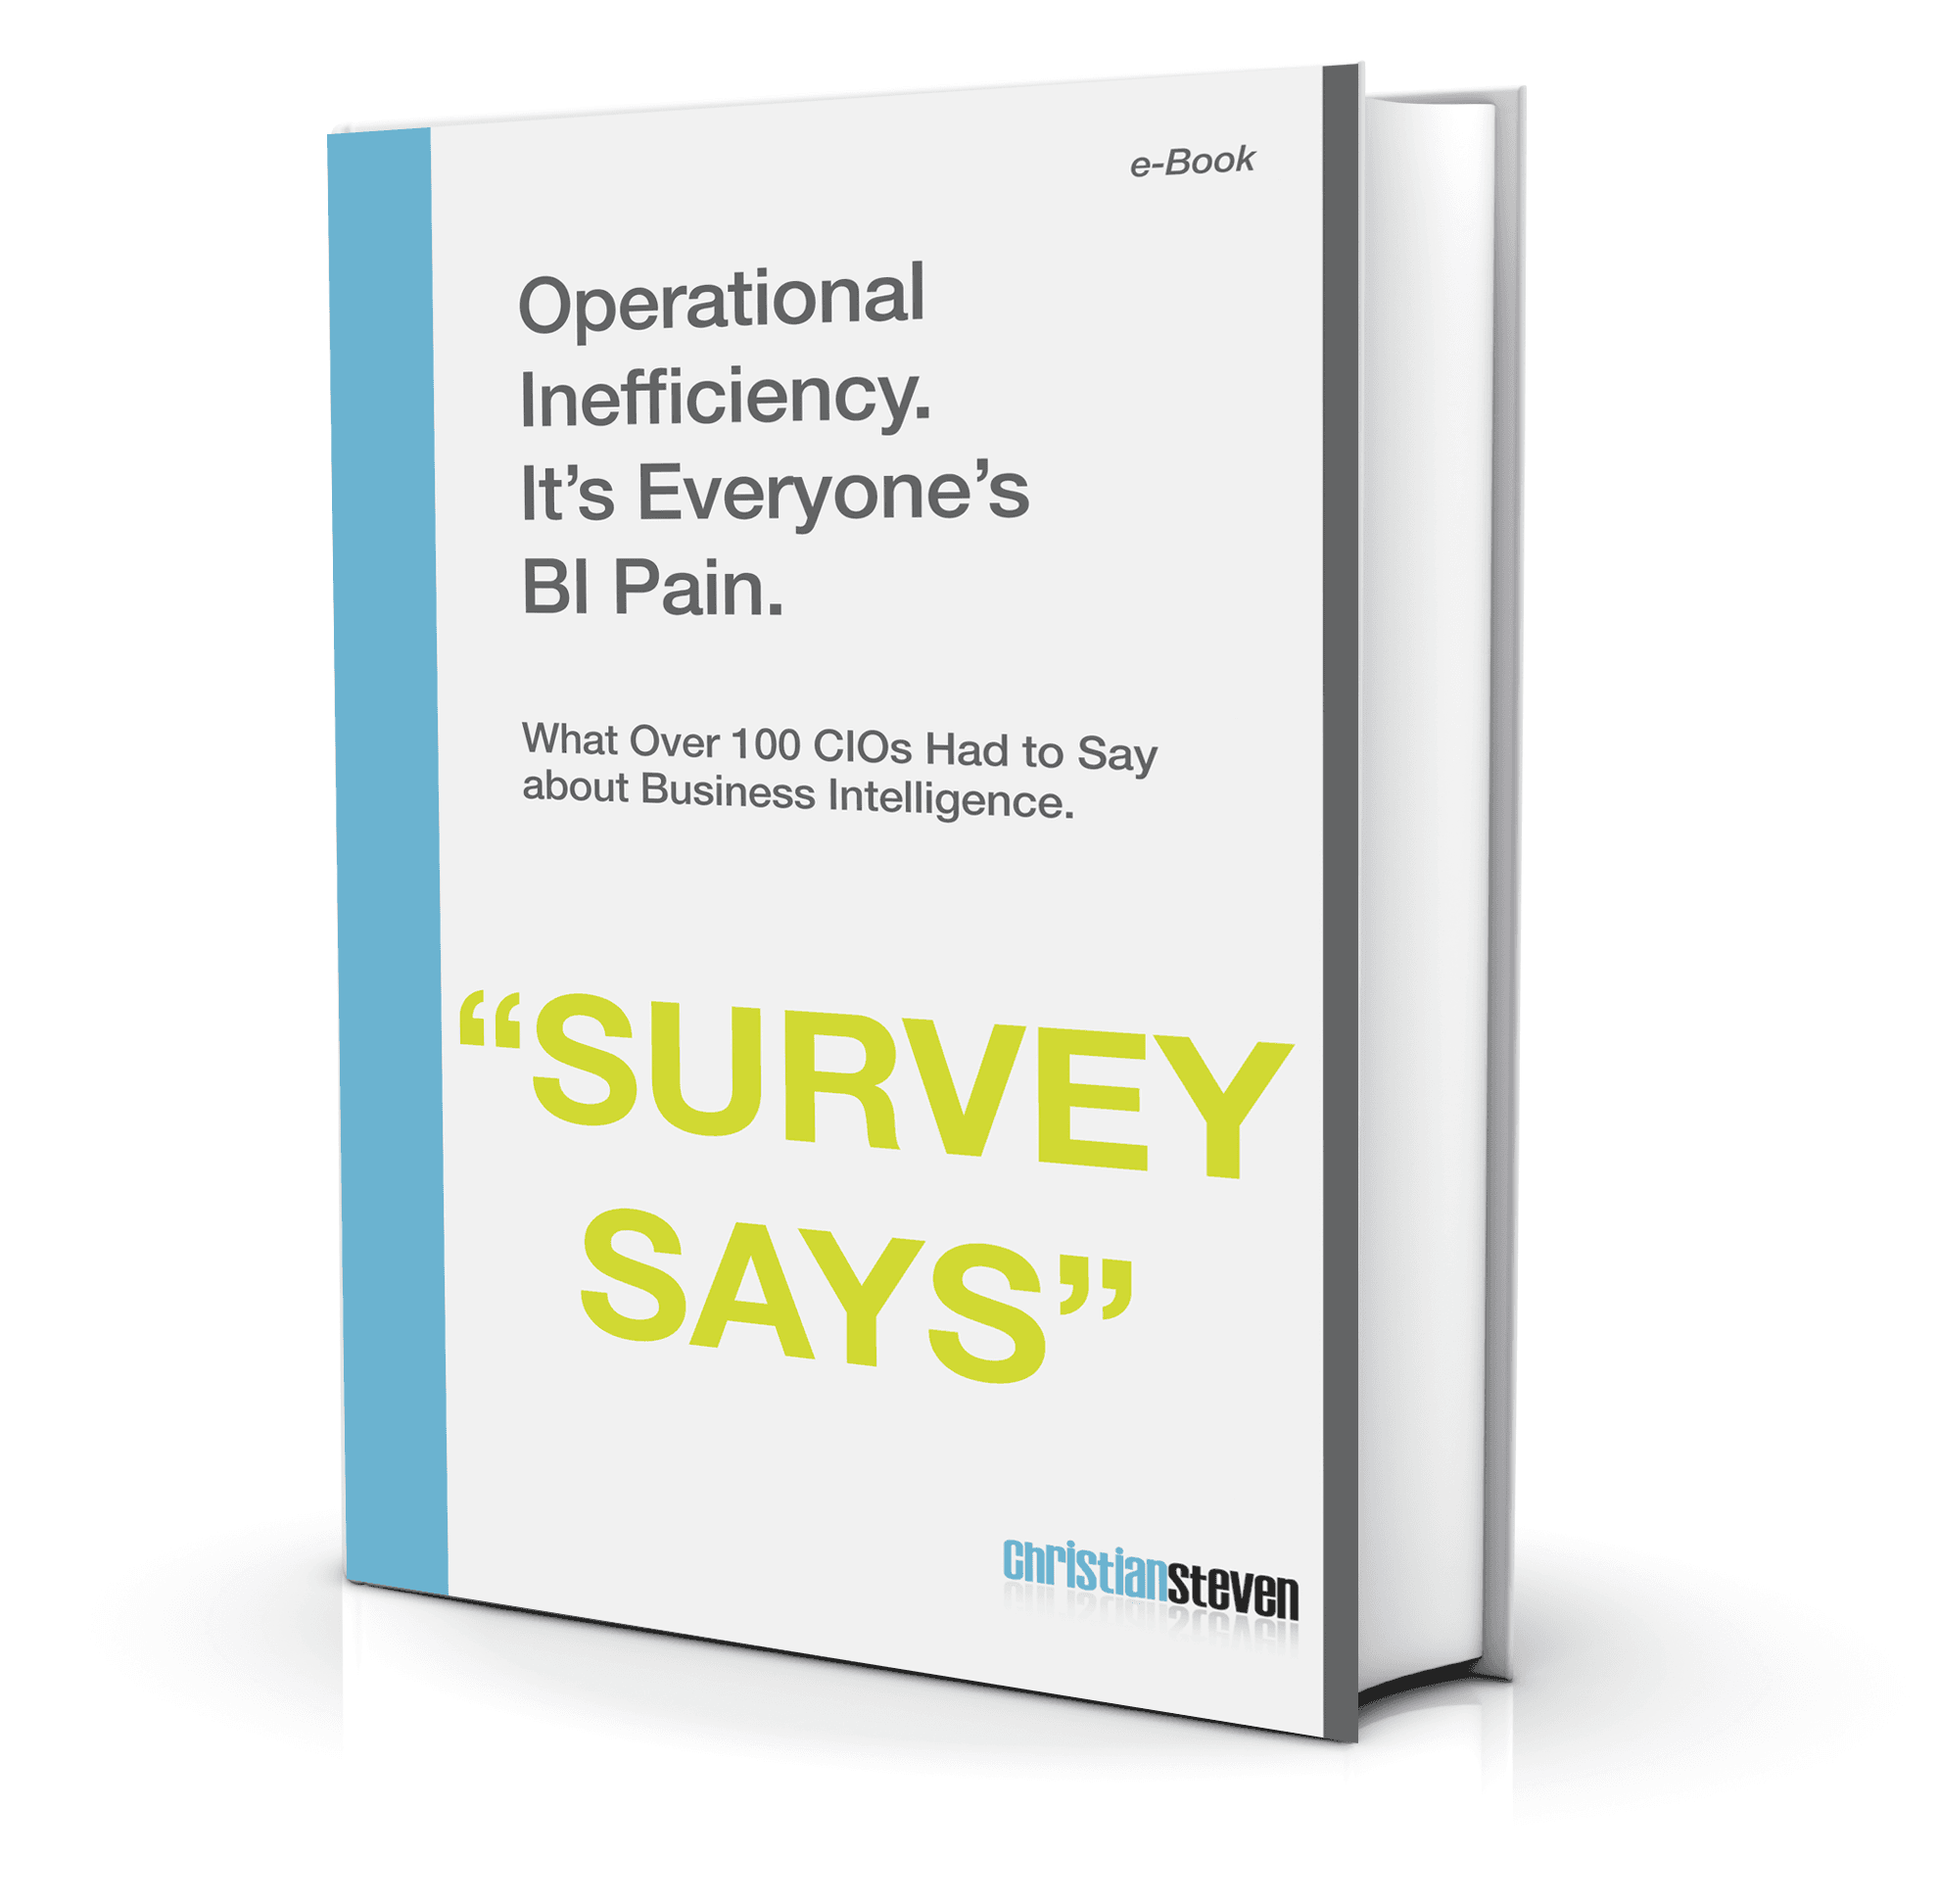 eBook: What 100 CIOs had to say about BI